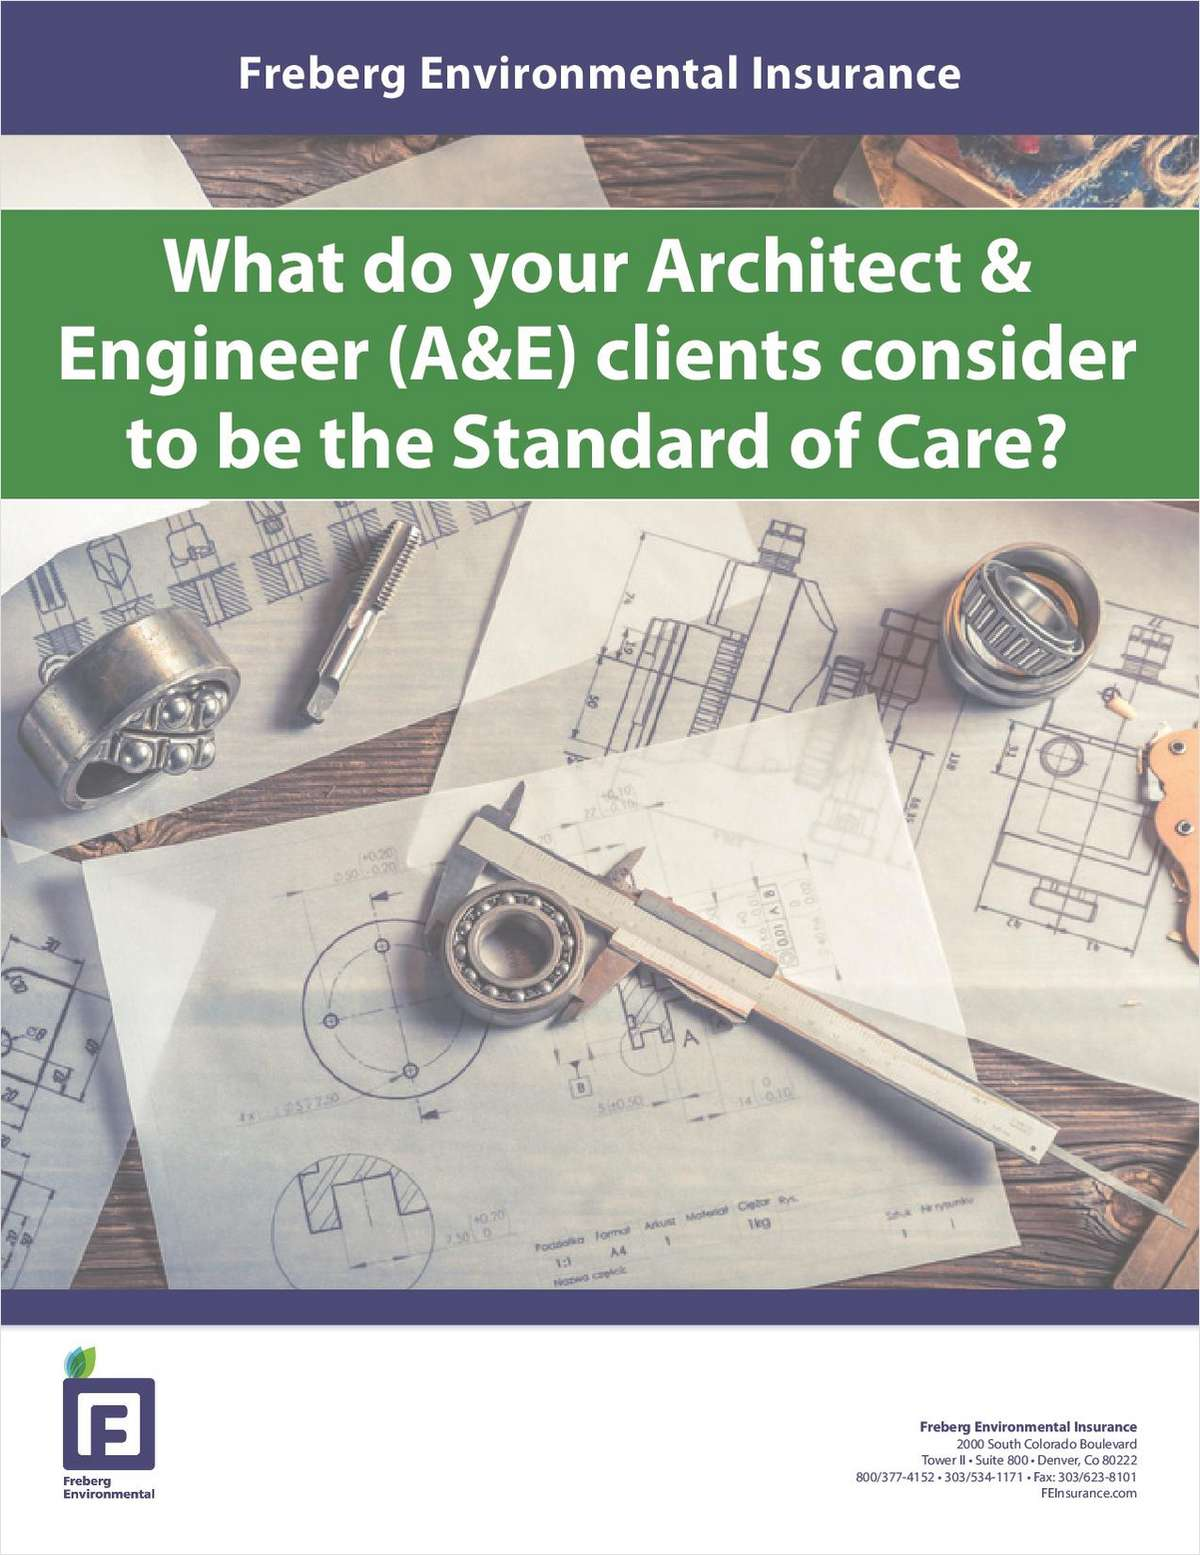 What Do Your Architect & Engineer (A&E) Clients Consider to Be the Standard of Care?